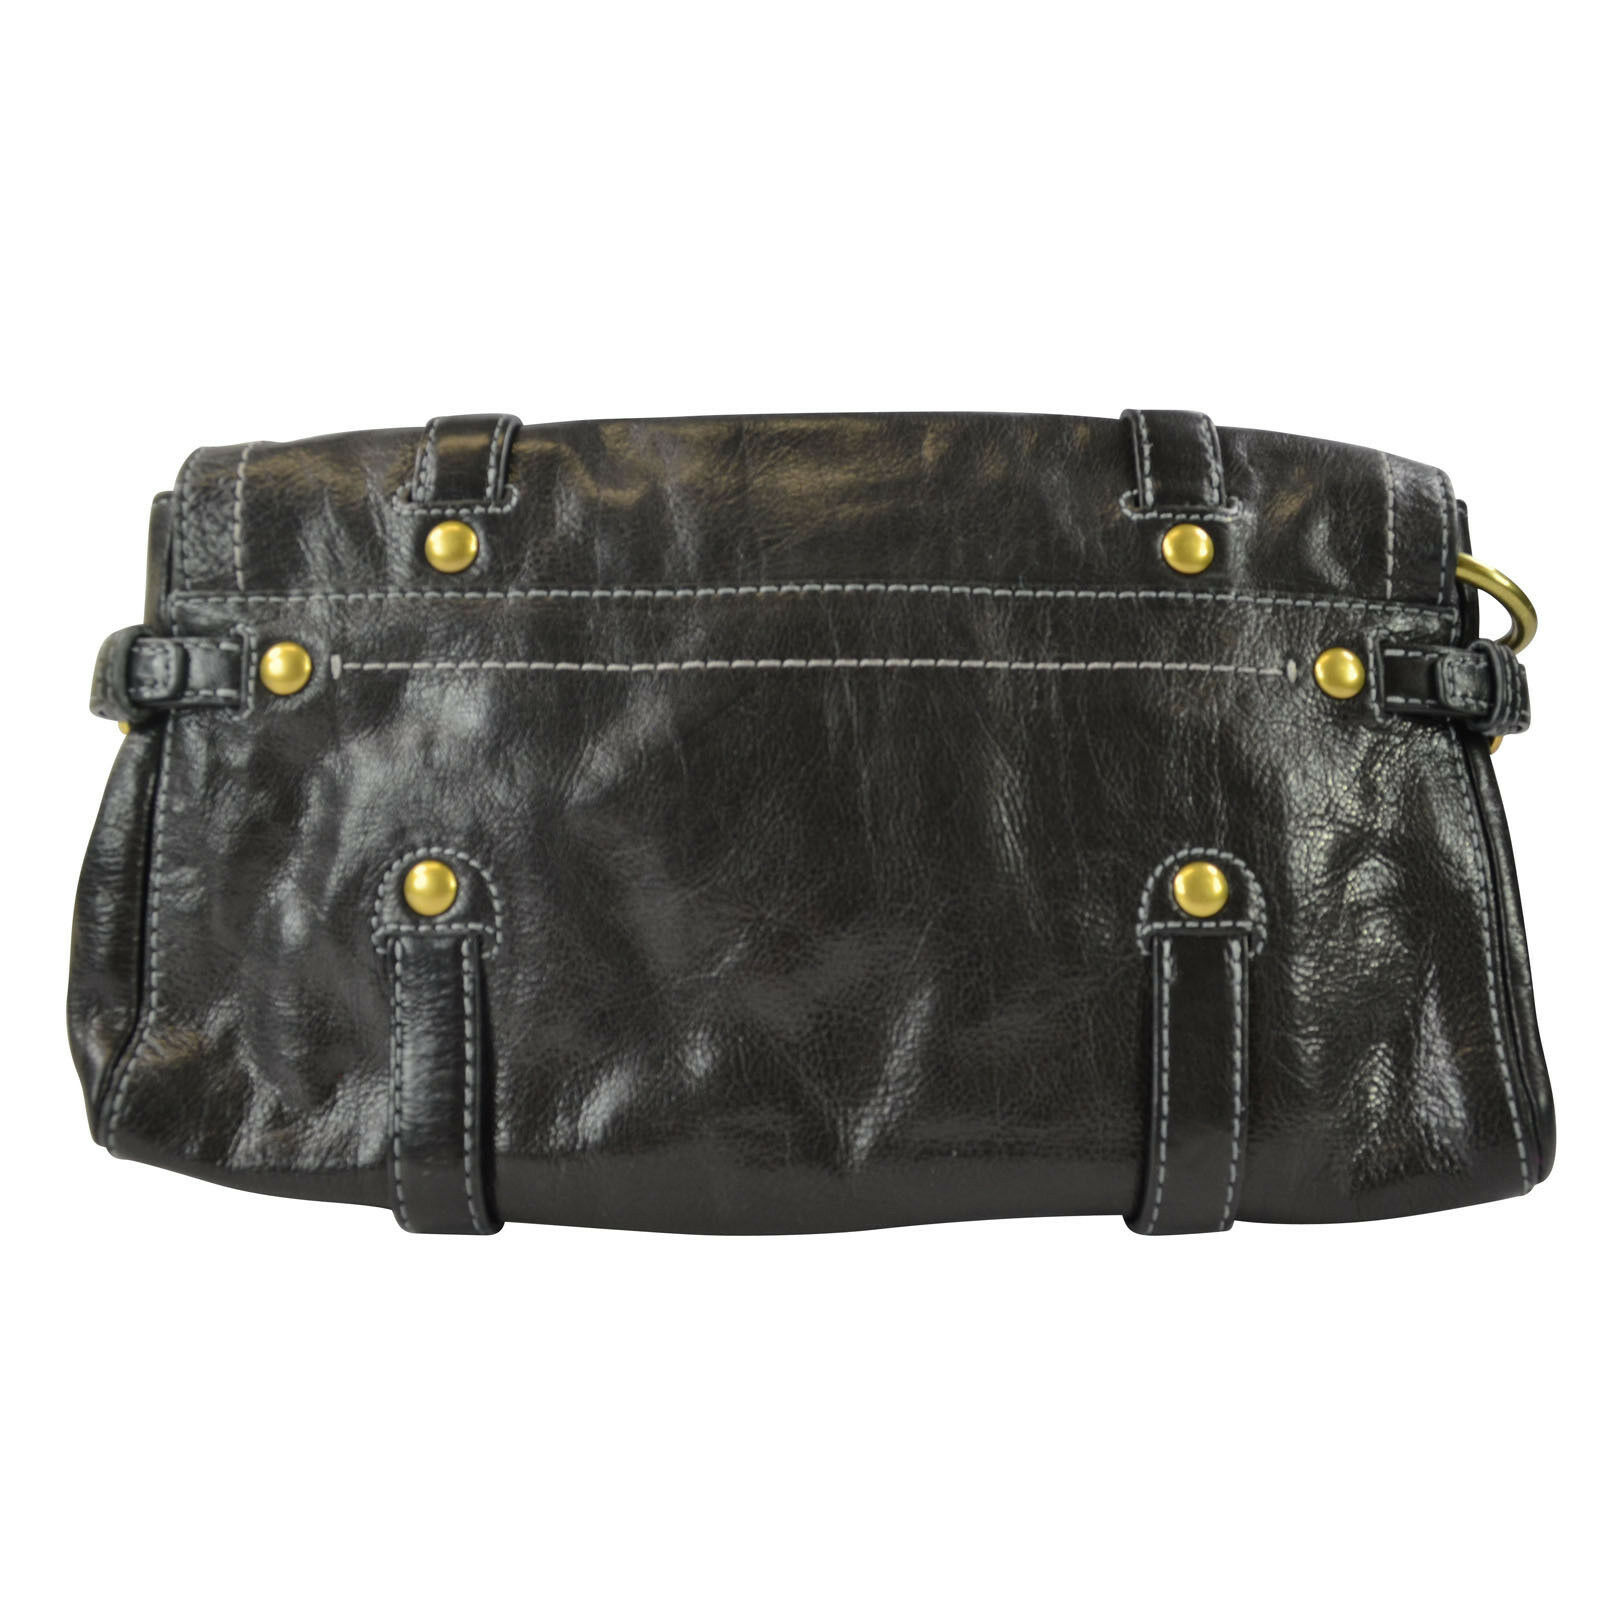 aca1213852d Details about Coach Legacy Leather Garcia Oversize Clutch Bag in Black $298+